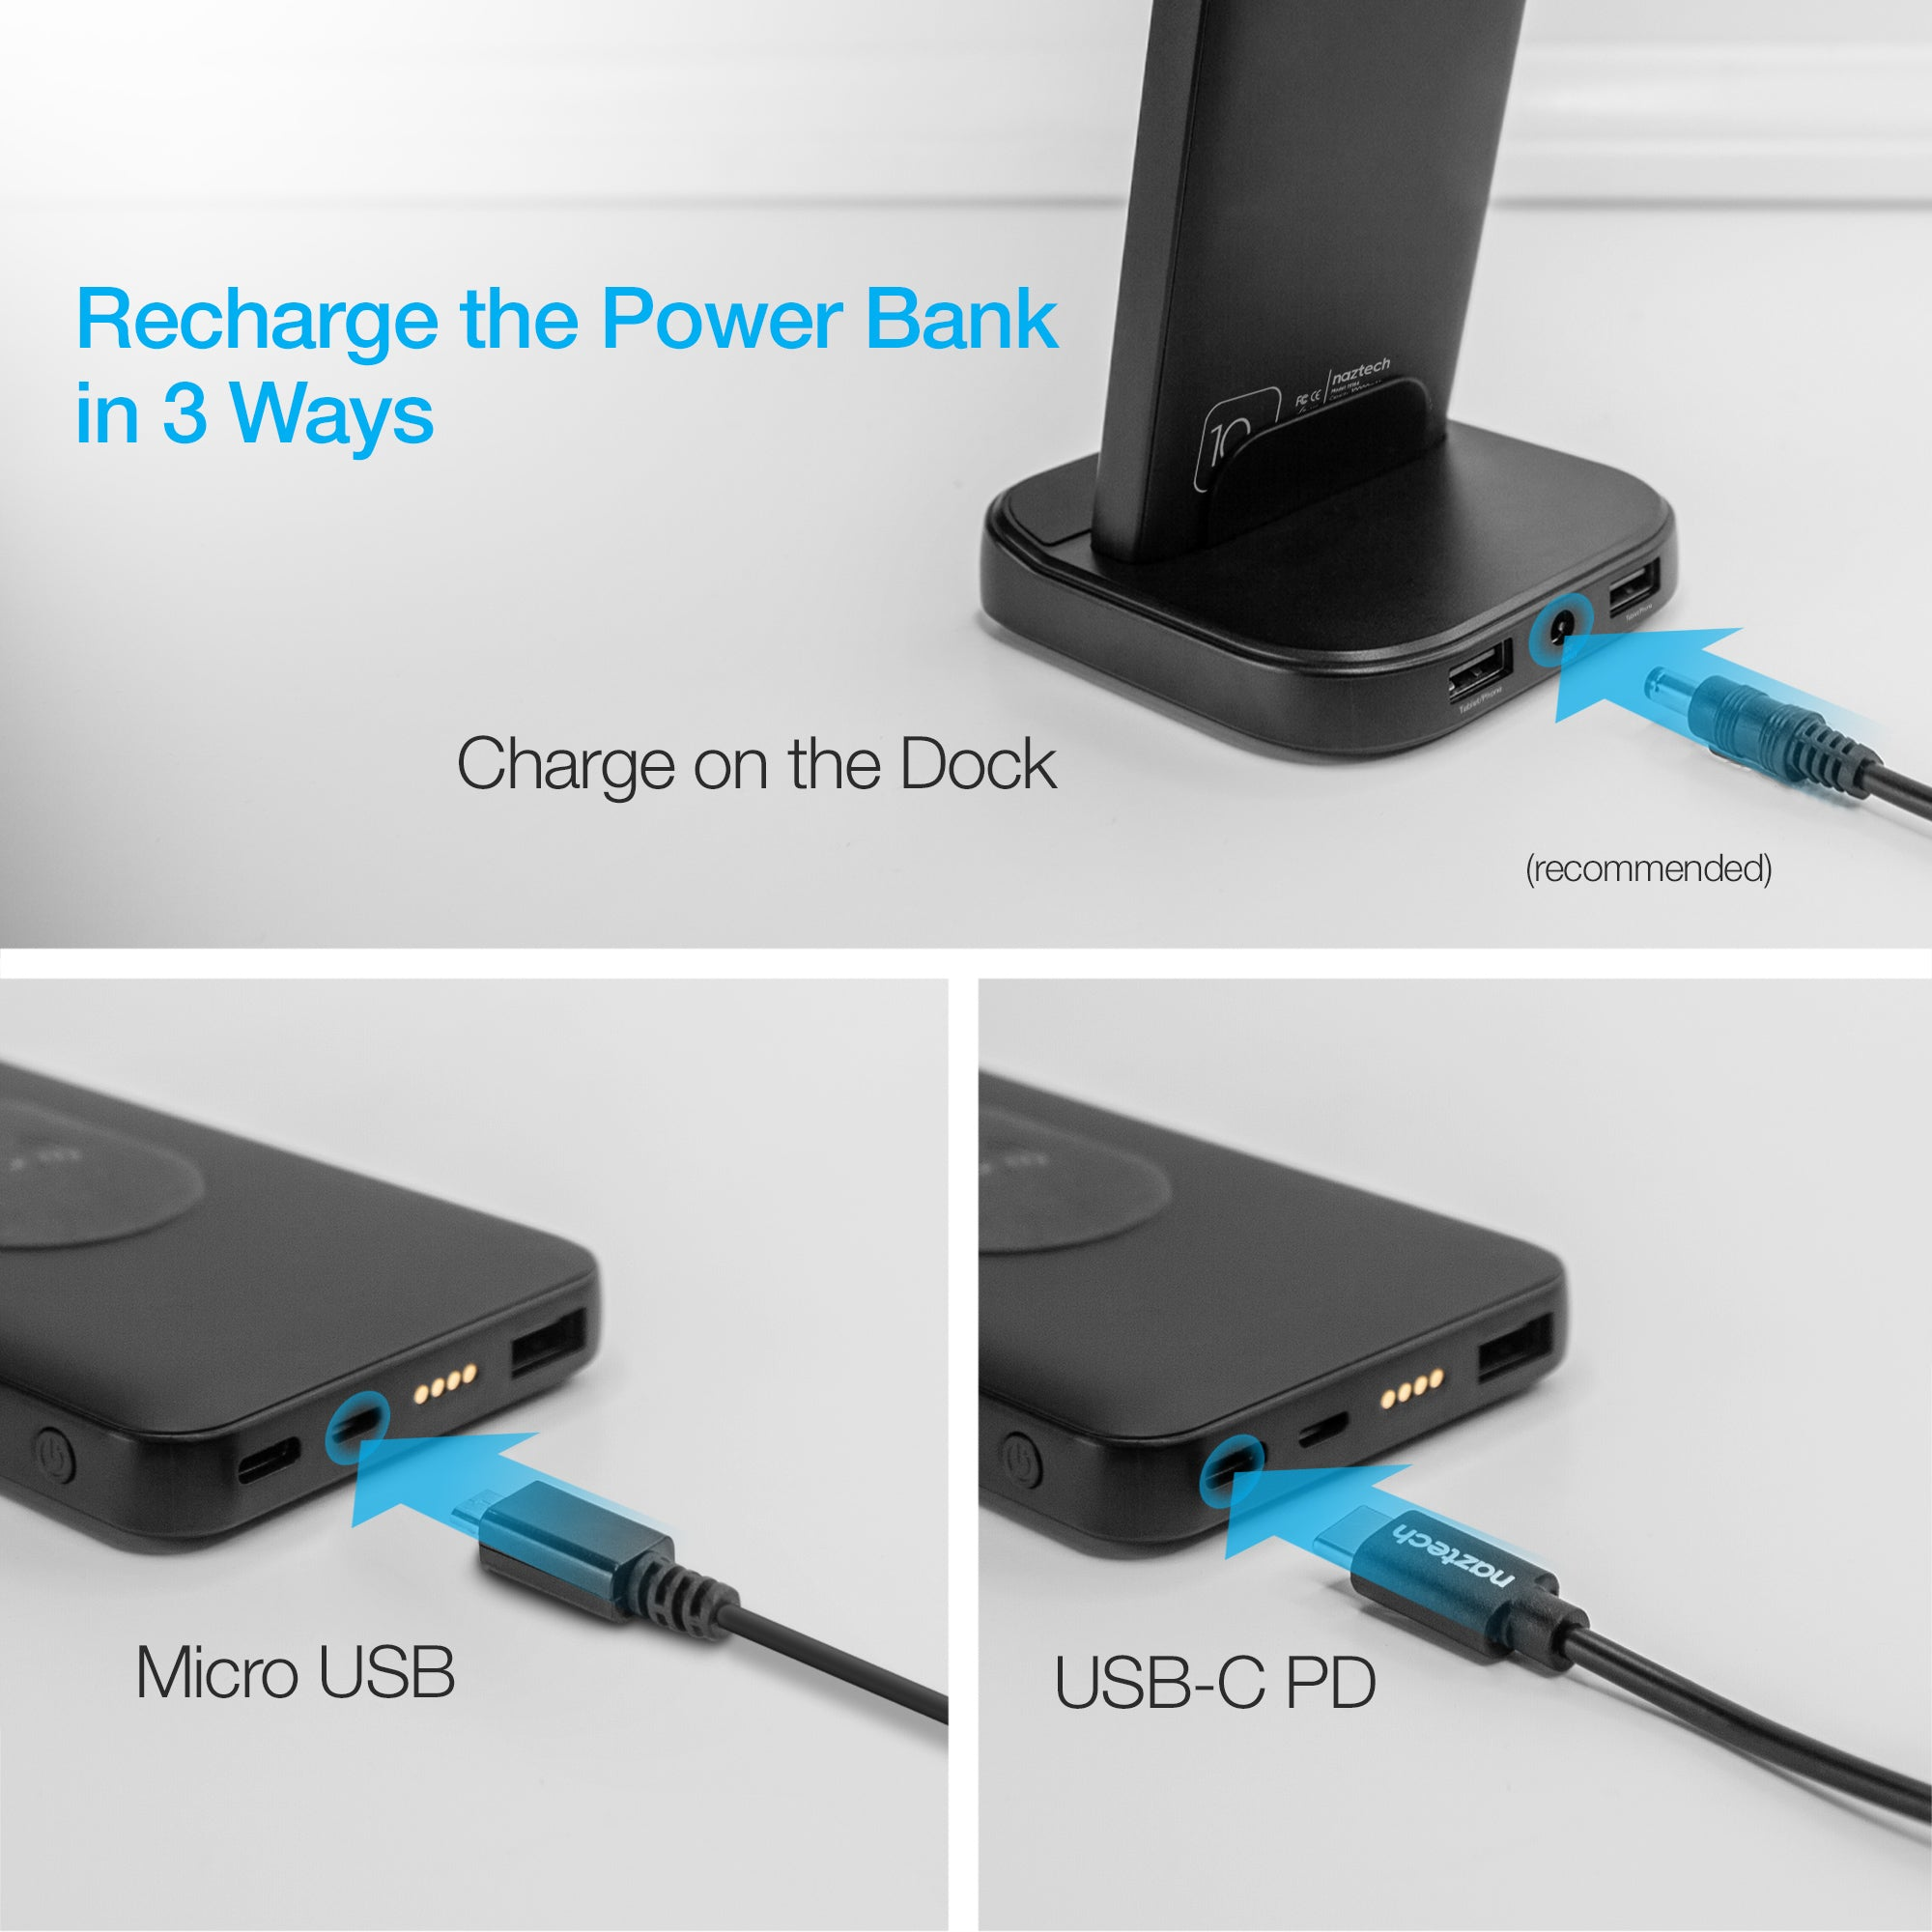 Core 2-in-1 Charging Dock + 10,000mAh Wireless Power Bank